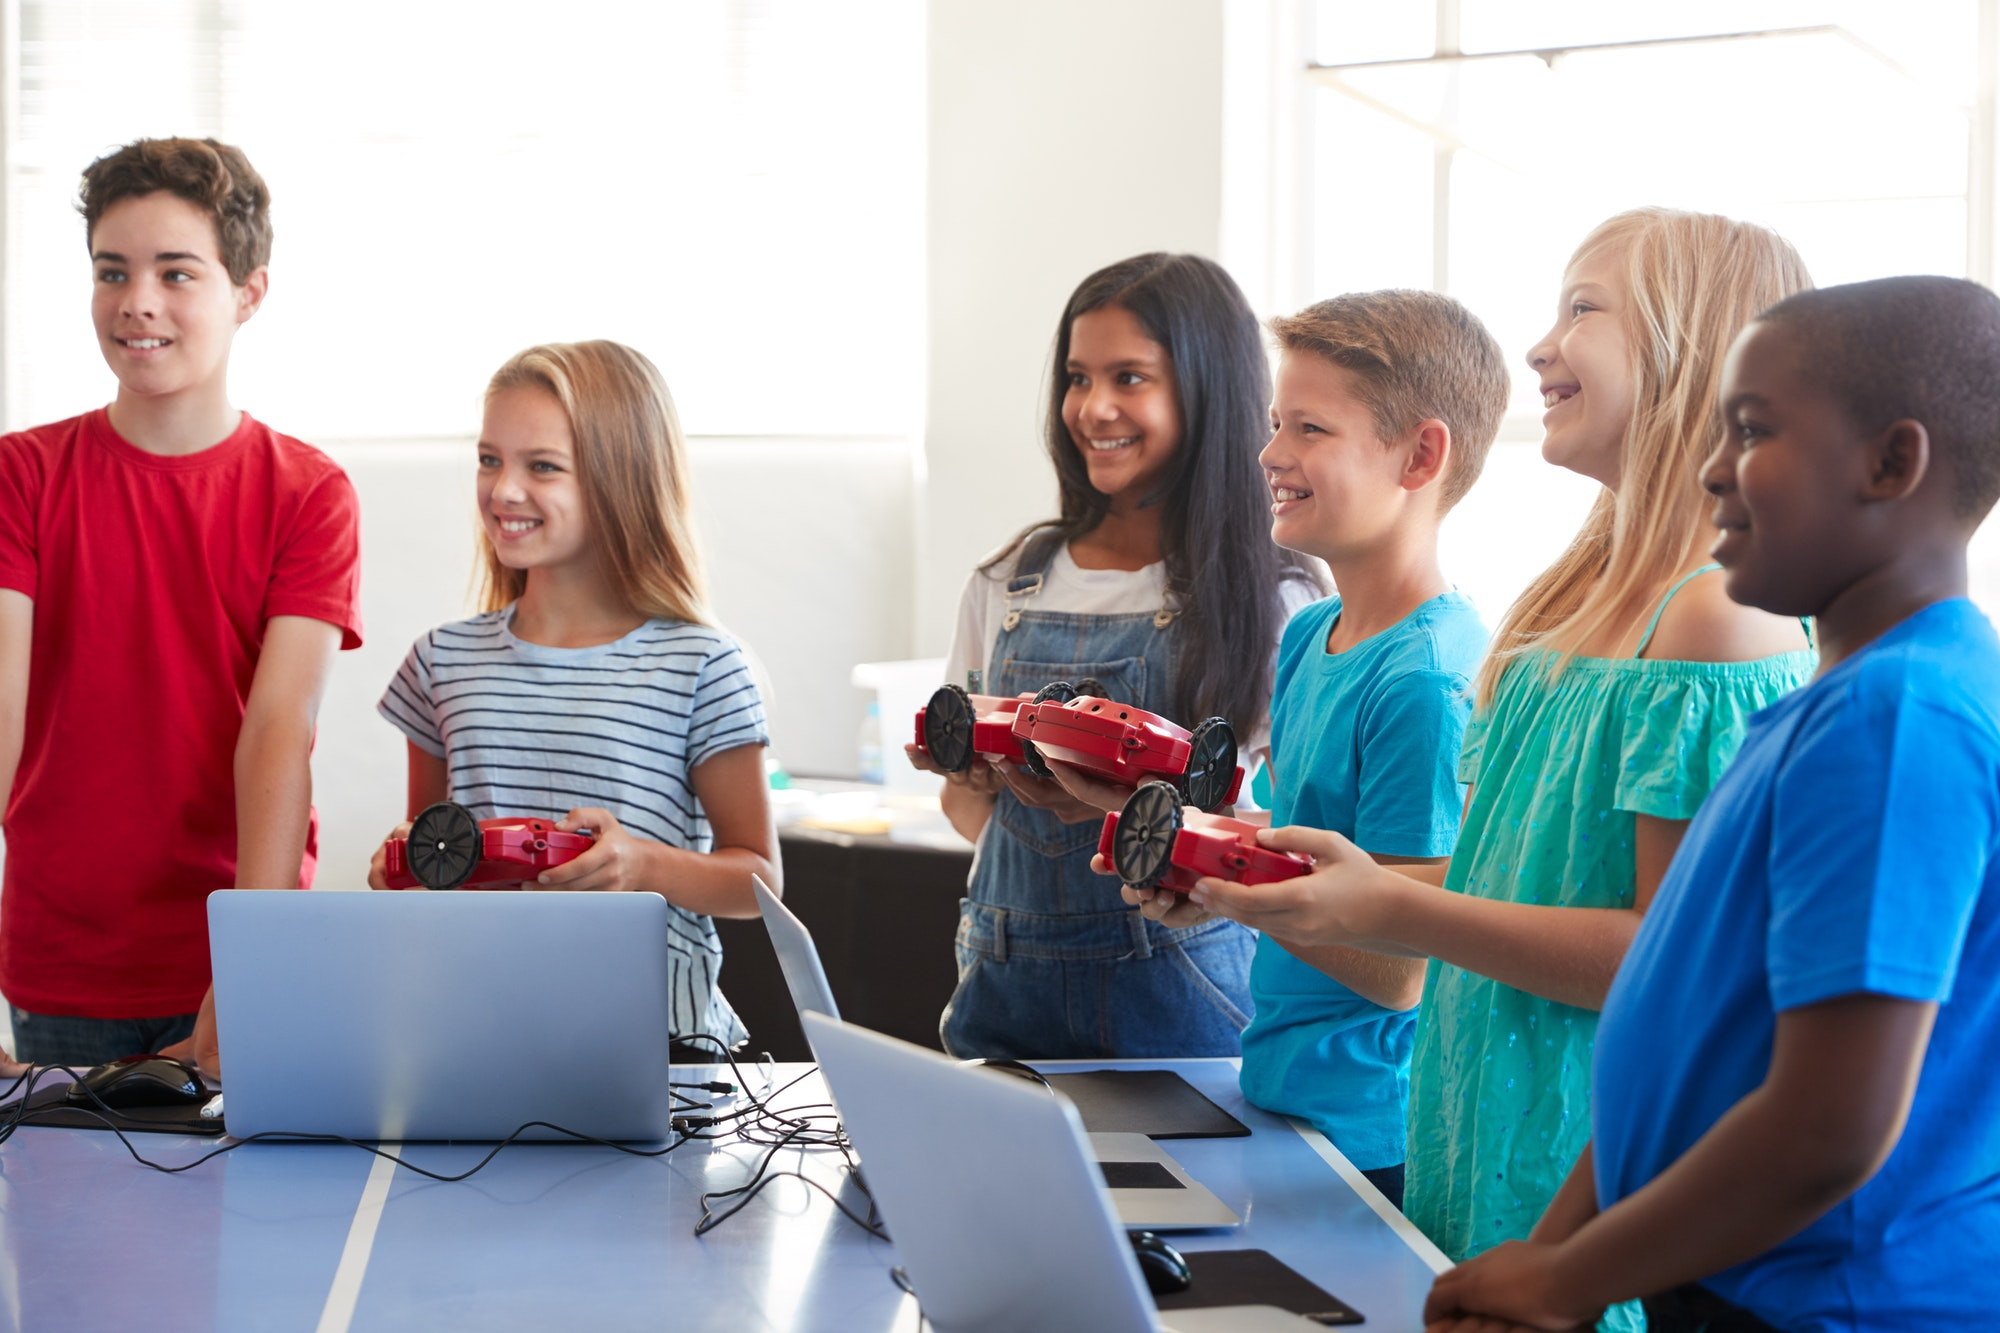 group-of-students-in-after-school-computer-coding-class-learning-to-program-robot-vehicle-1-1.jpg